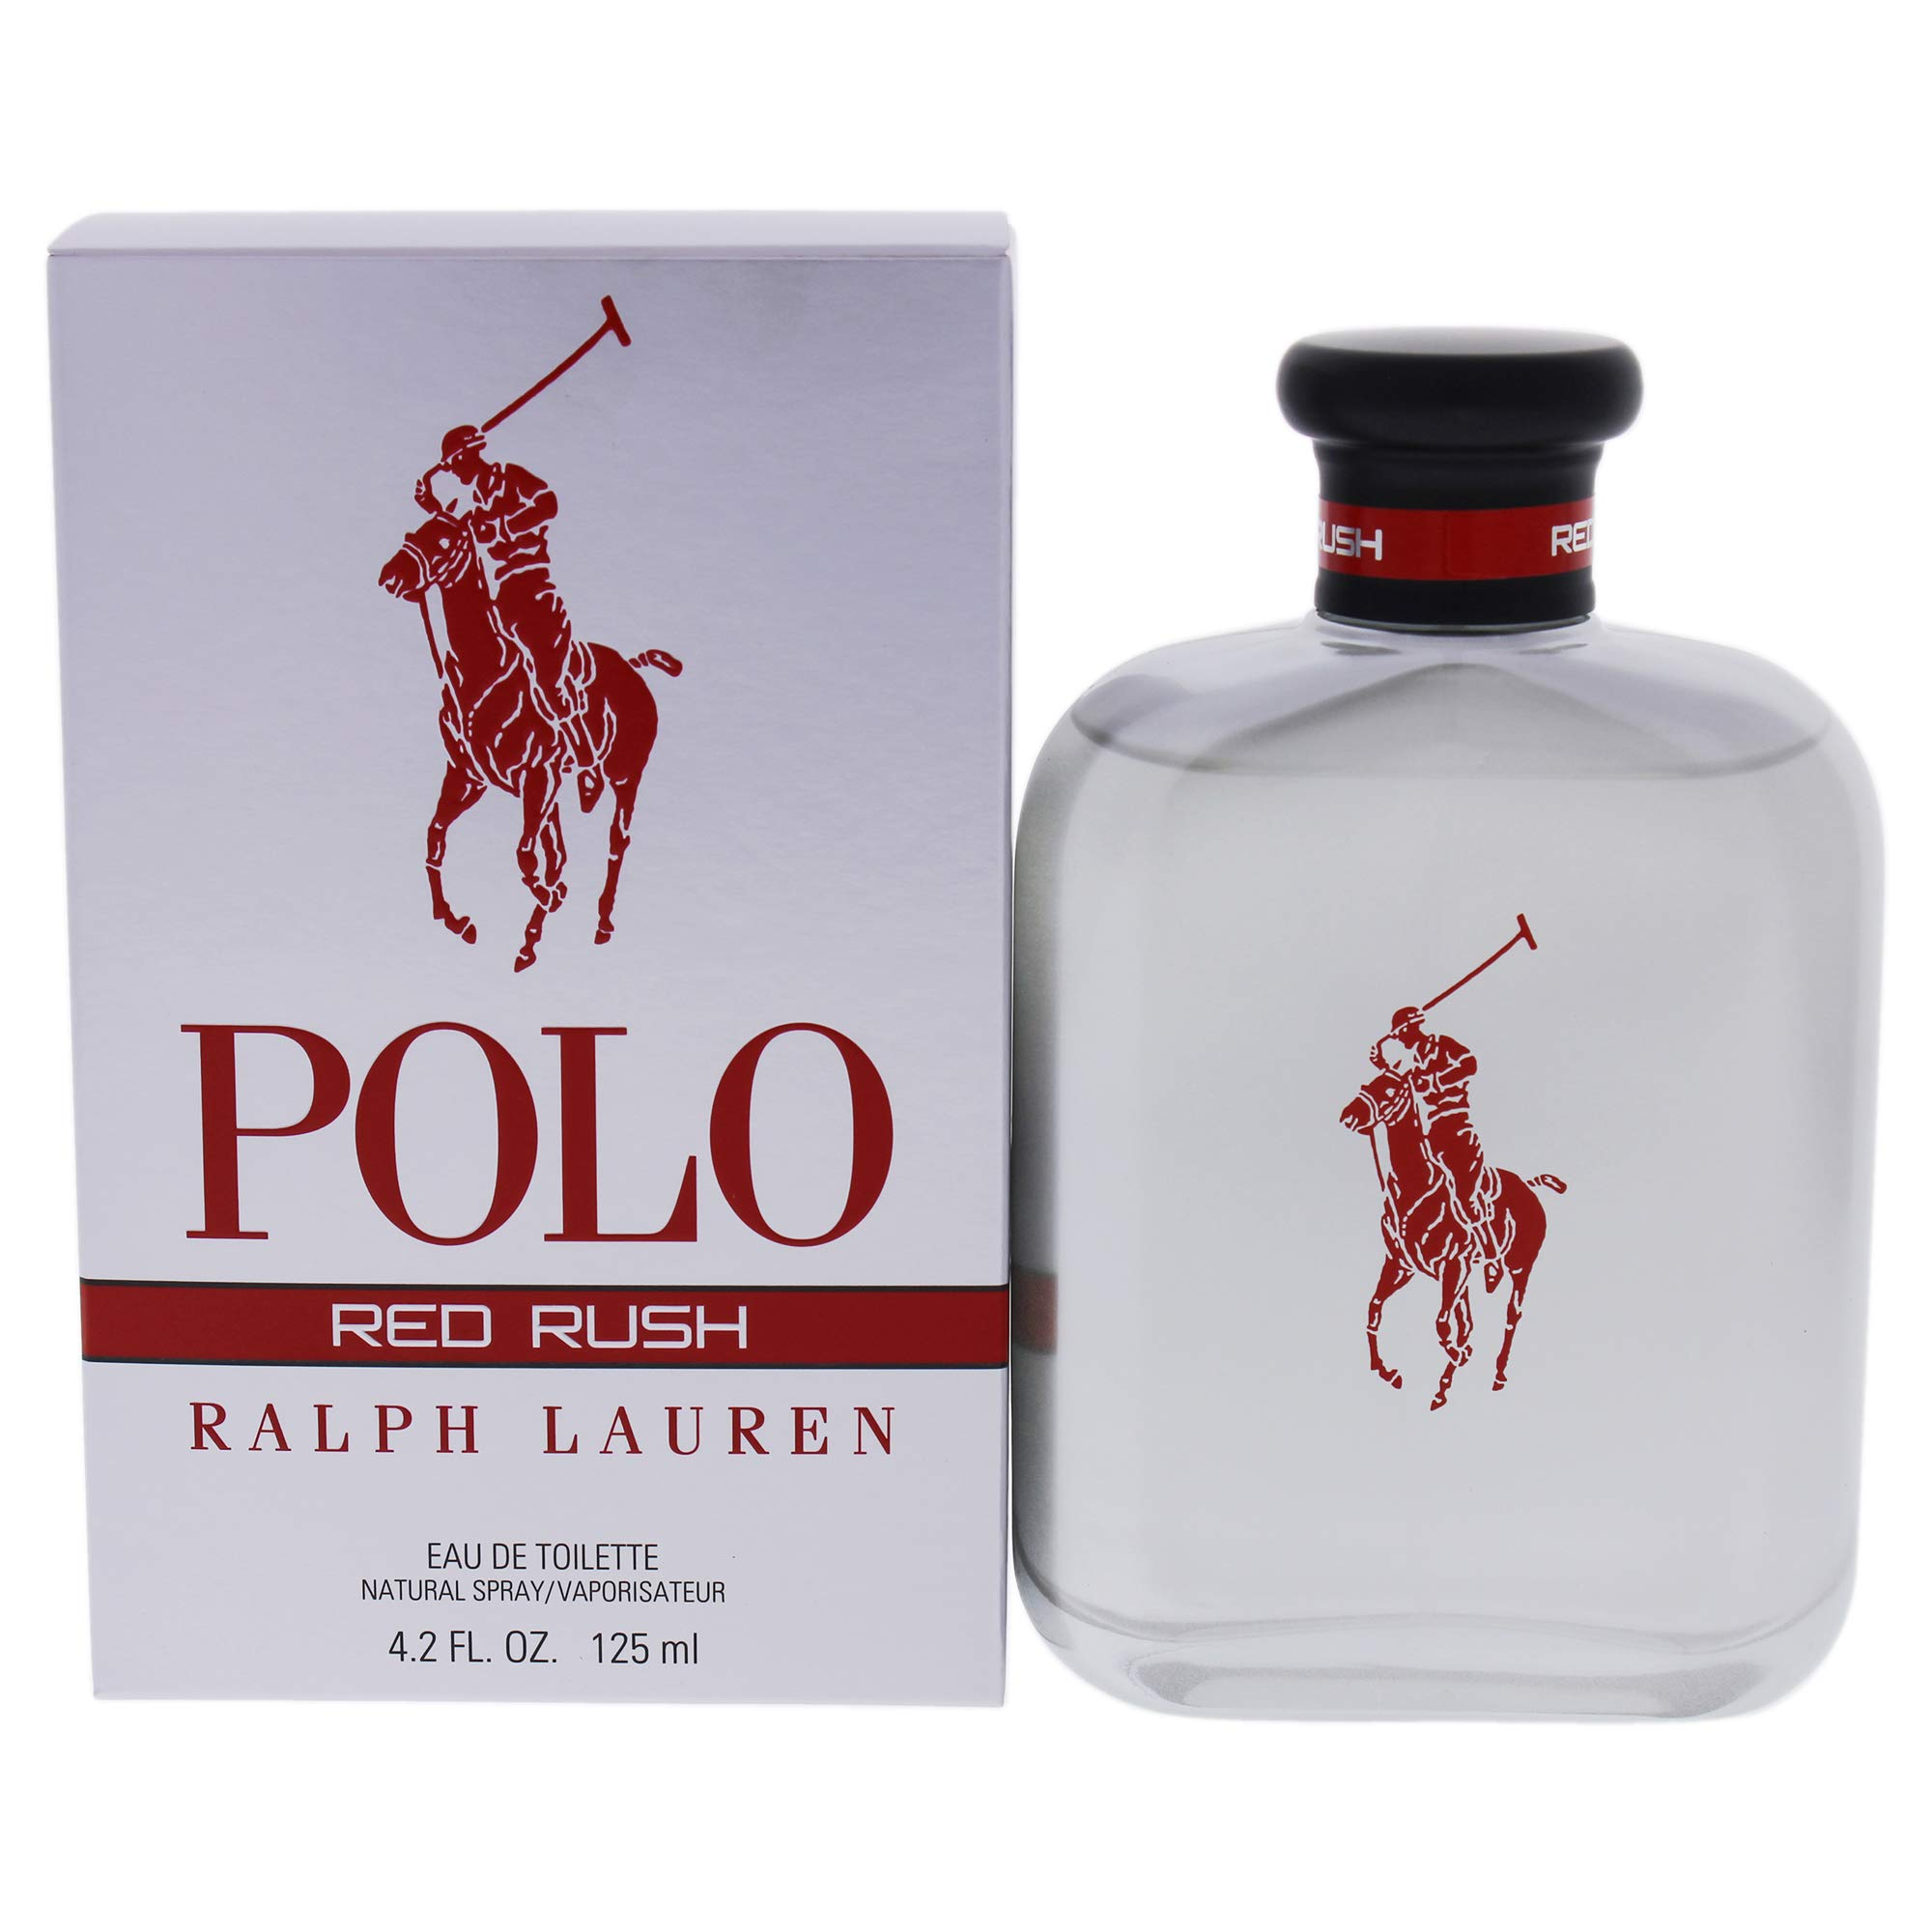 Ralph Lauren Polo Red Rush By Ralph Lauren for Men 4.2 Oz Eau De Toilette Spray, 4.2 Ounce by Ralph Lauren